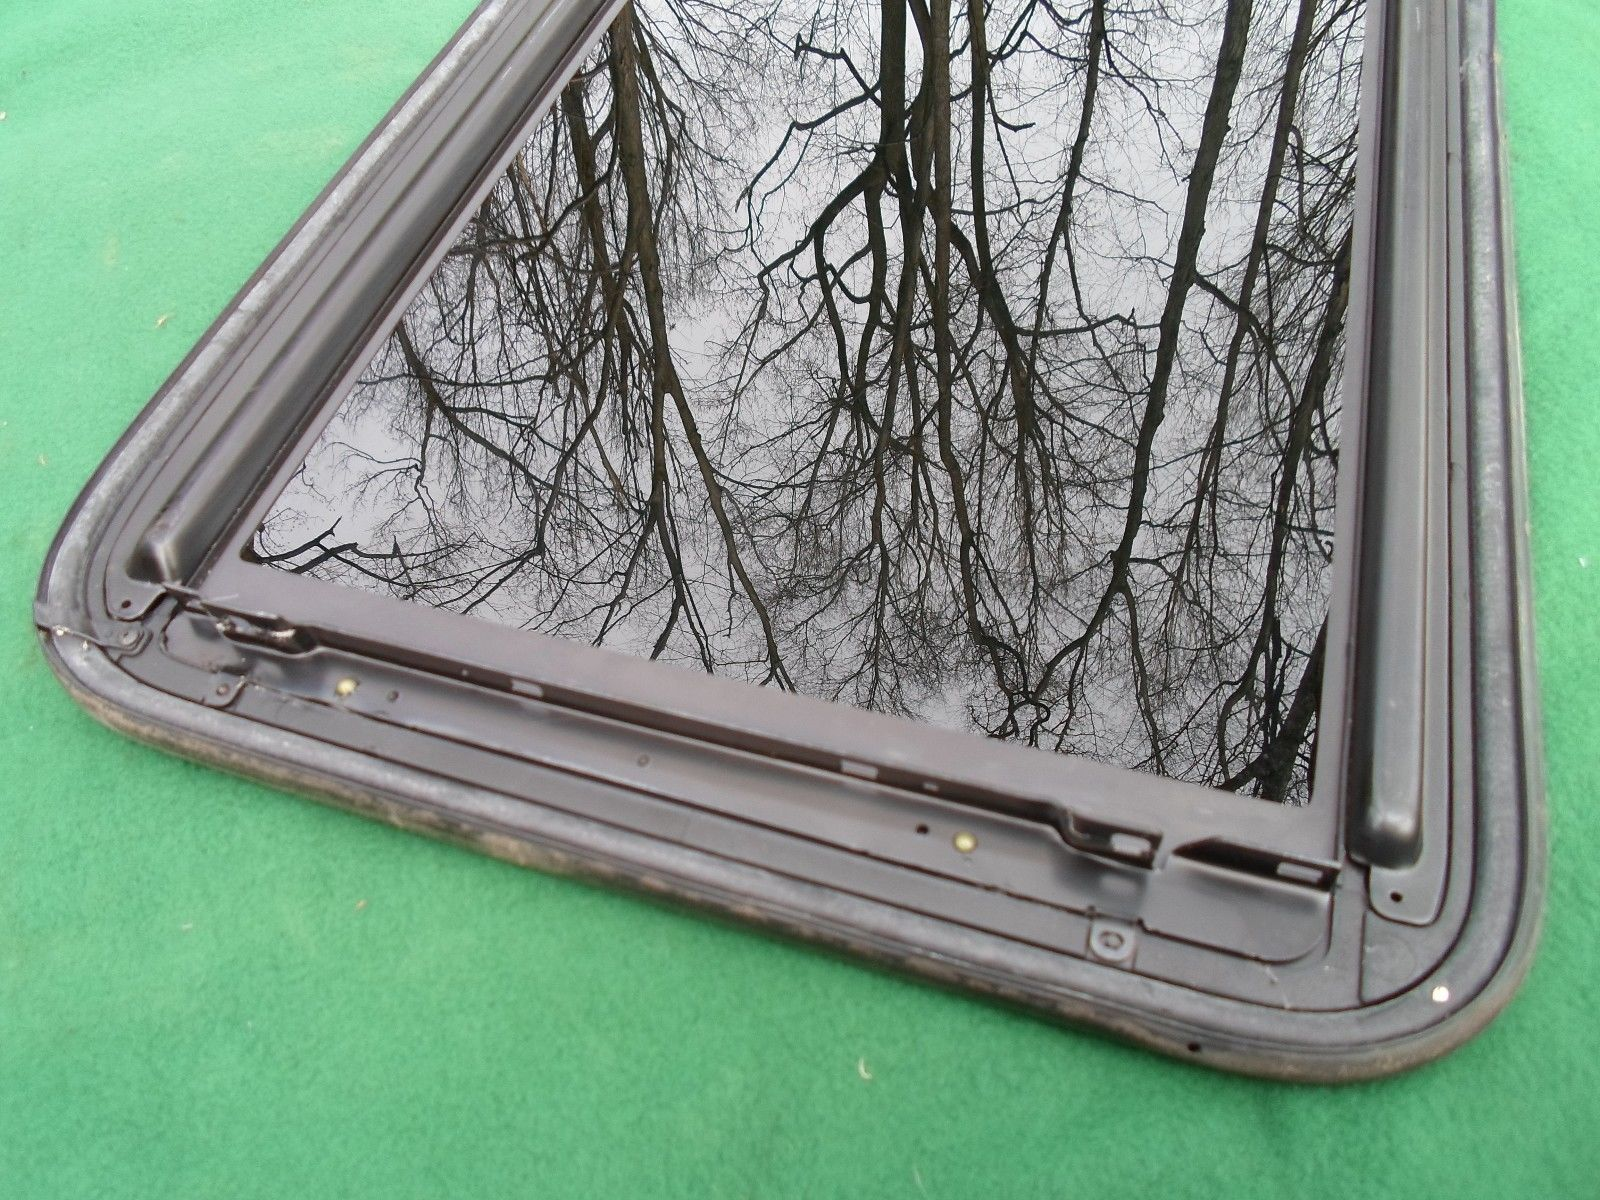 2000 TOYOTA SOLARA YEAR SPECIFIC OEM FACTORY SUNROOF GLASS FREE SHIPPING!